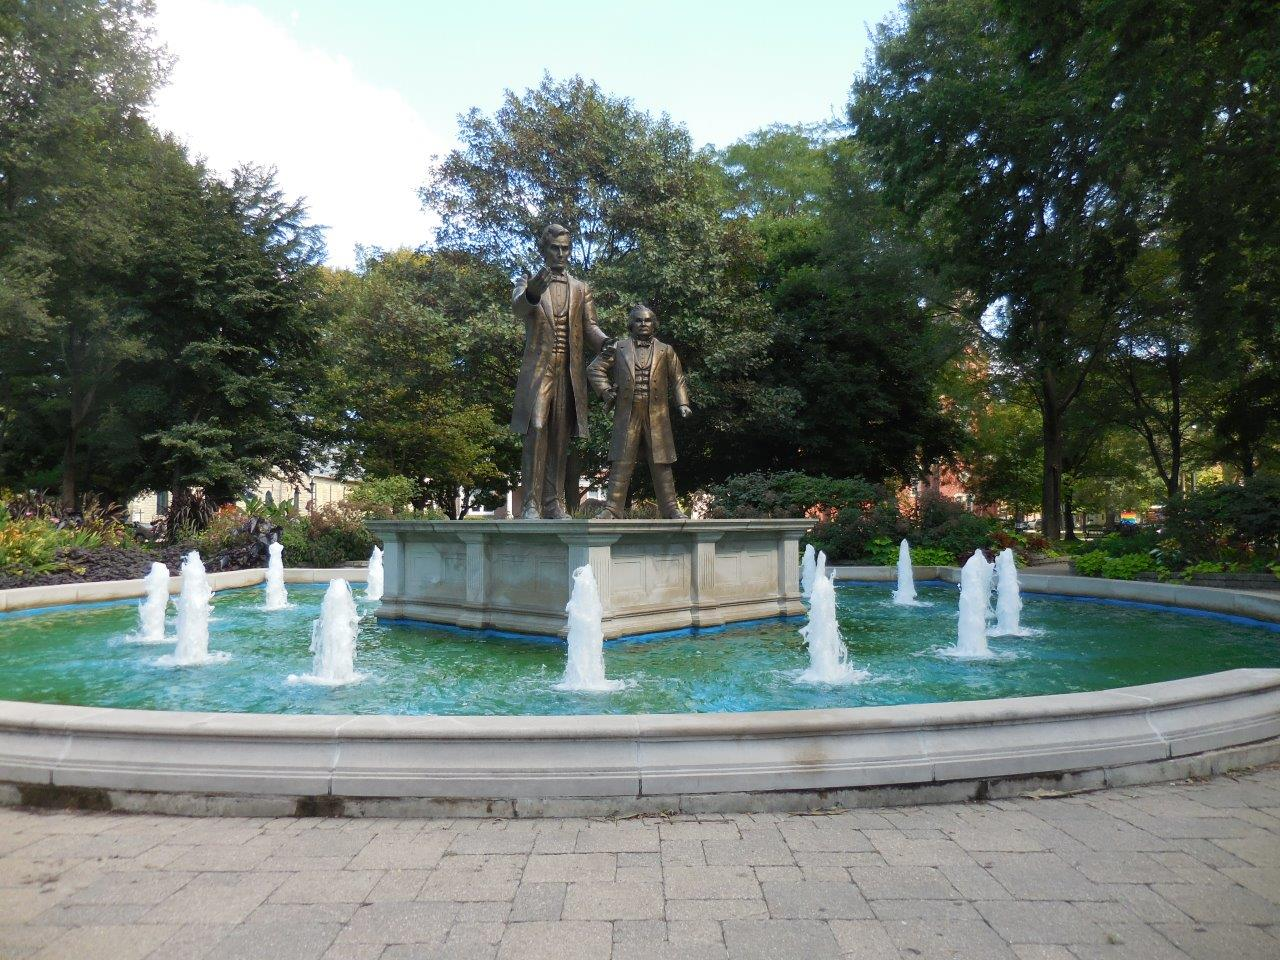 Lincoln-Douglas statue at site of first debate